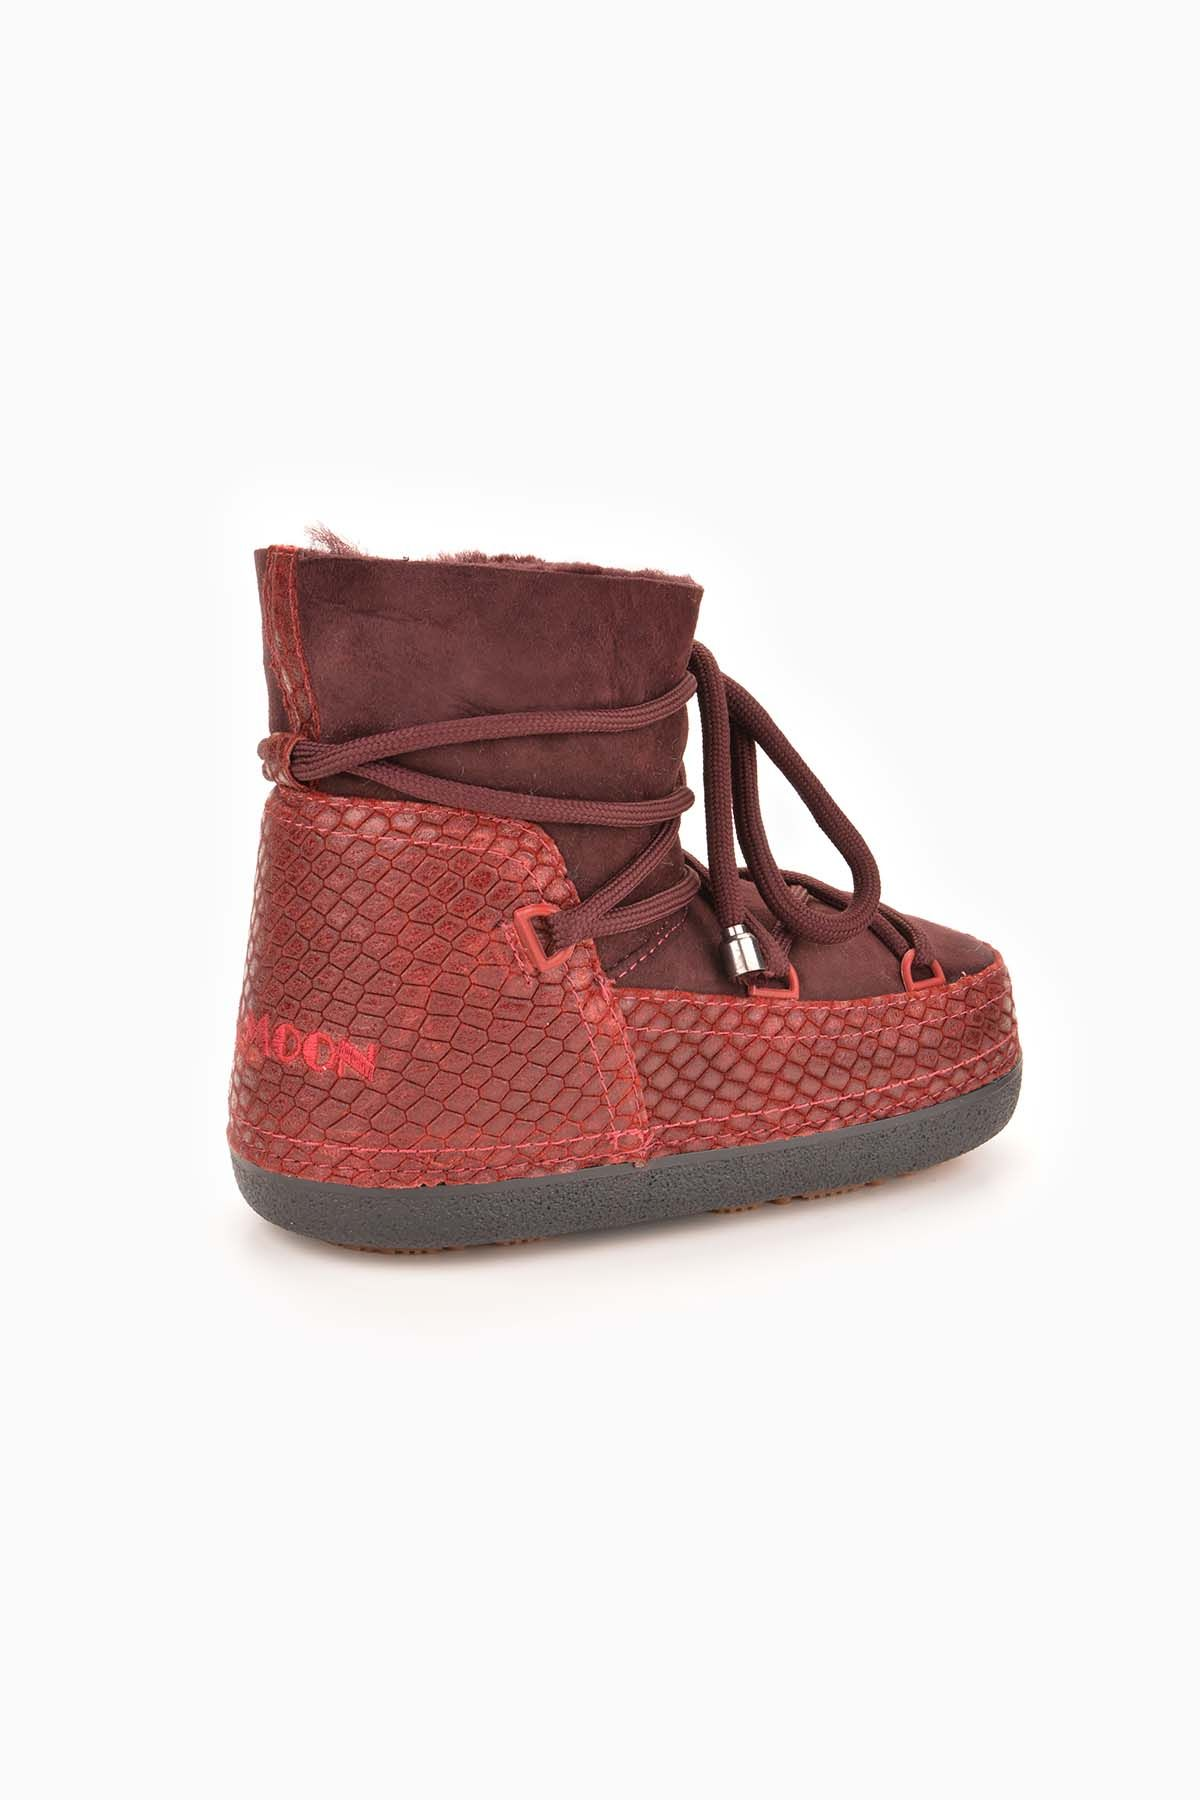 Cool Moon Moonboots From Genuine Sheepskin 251010 Claret red